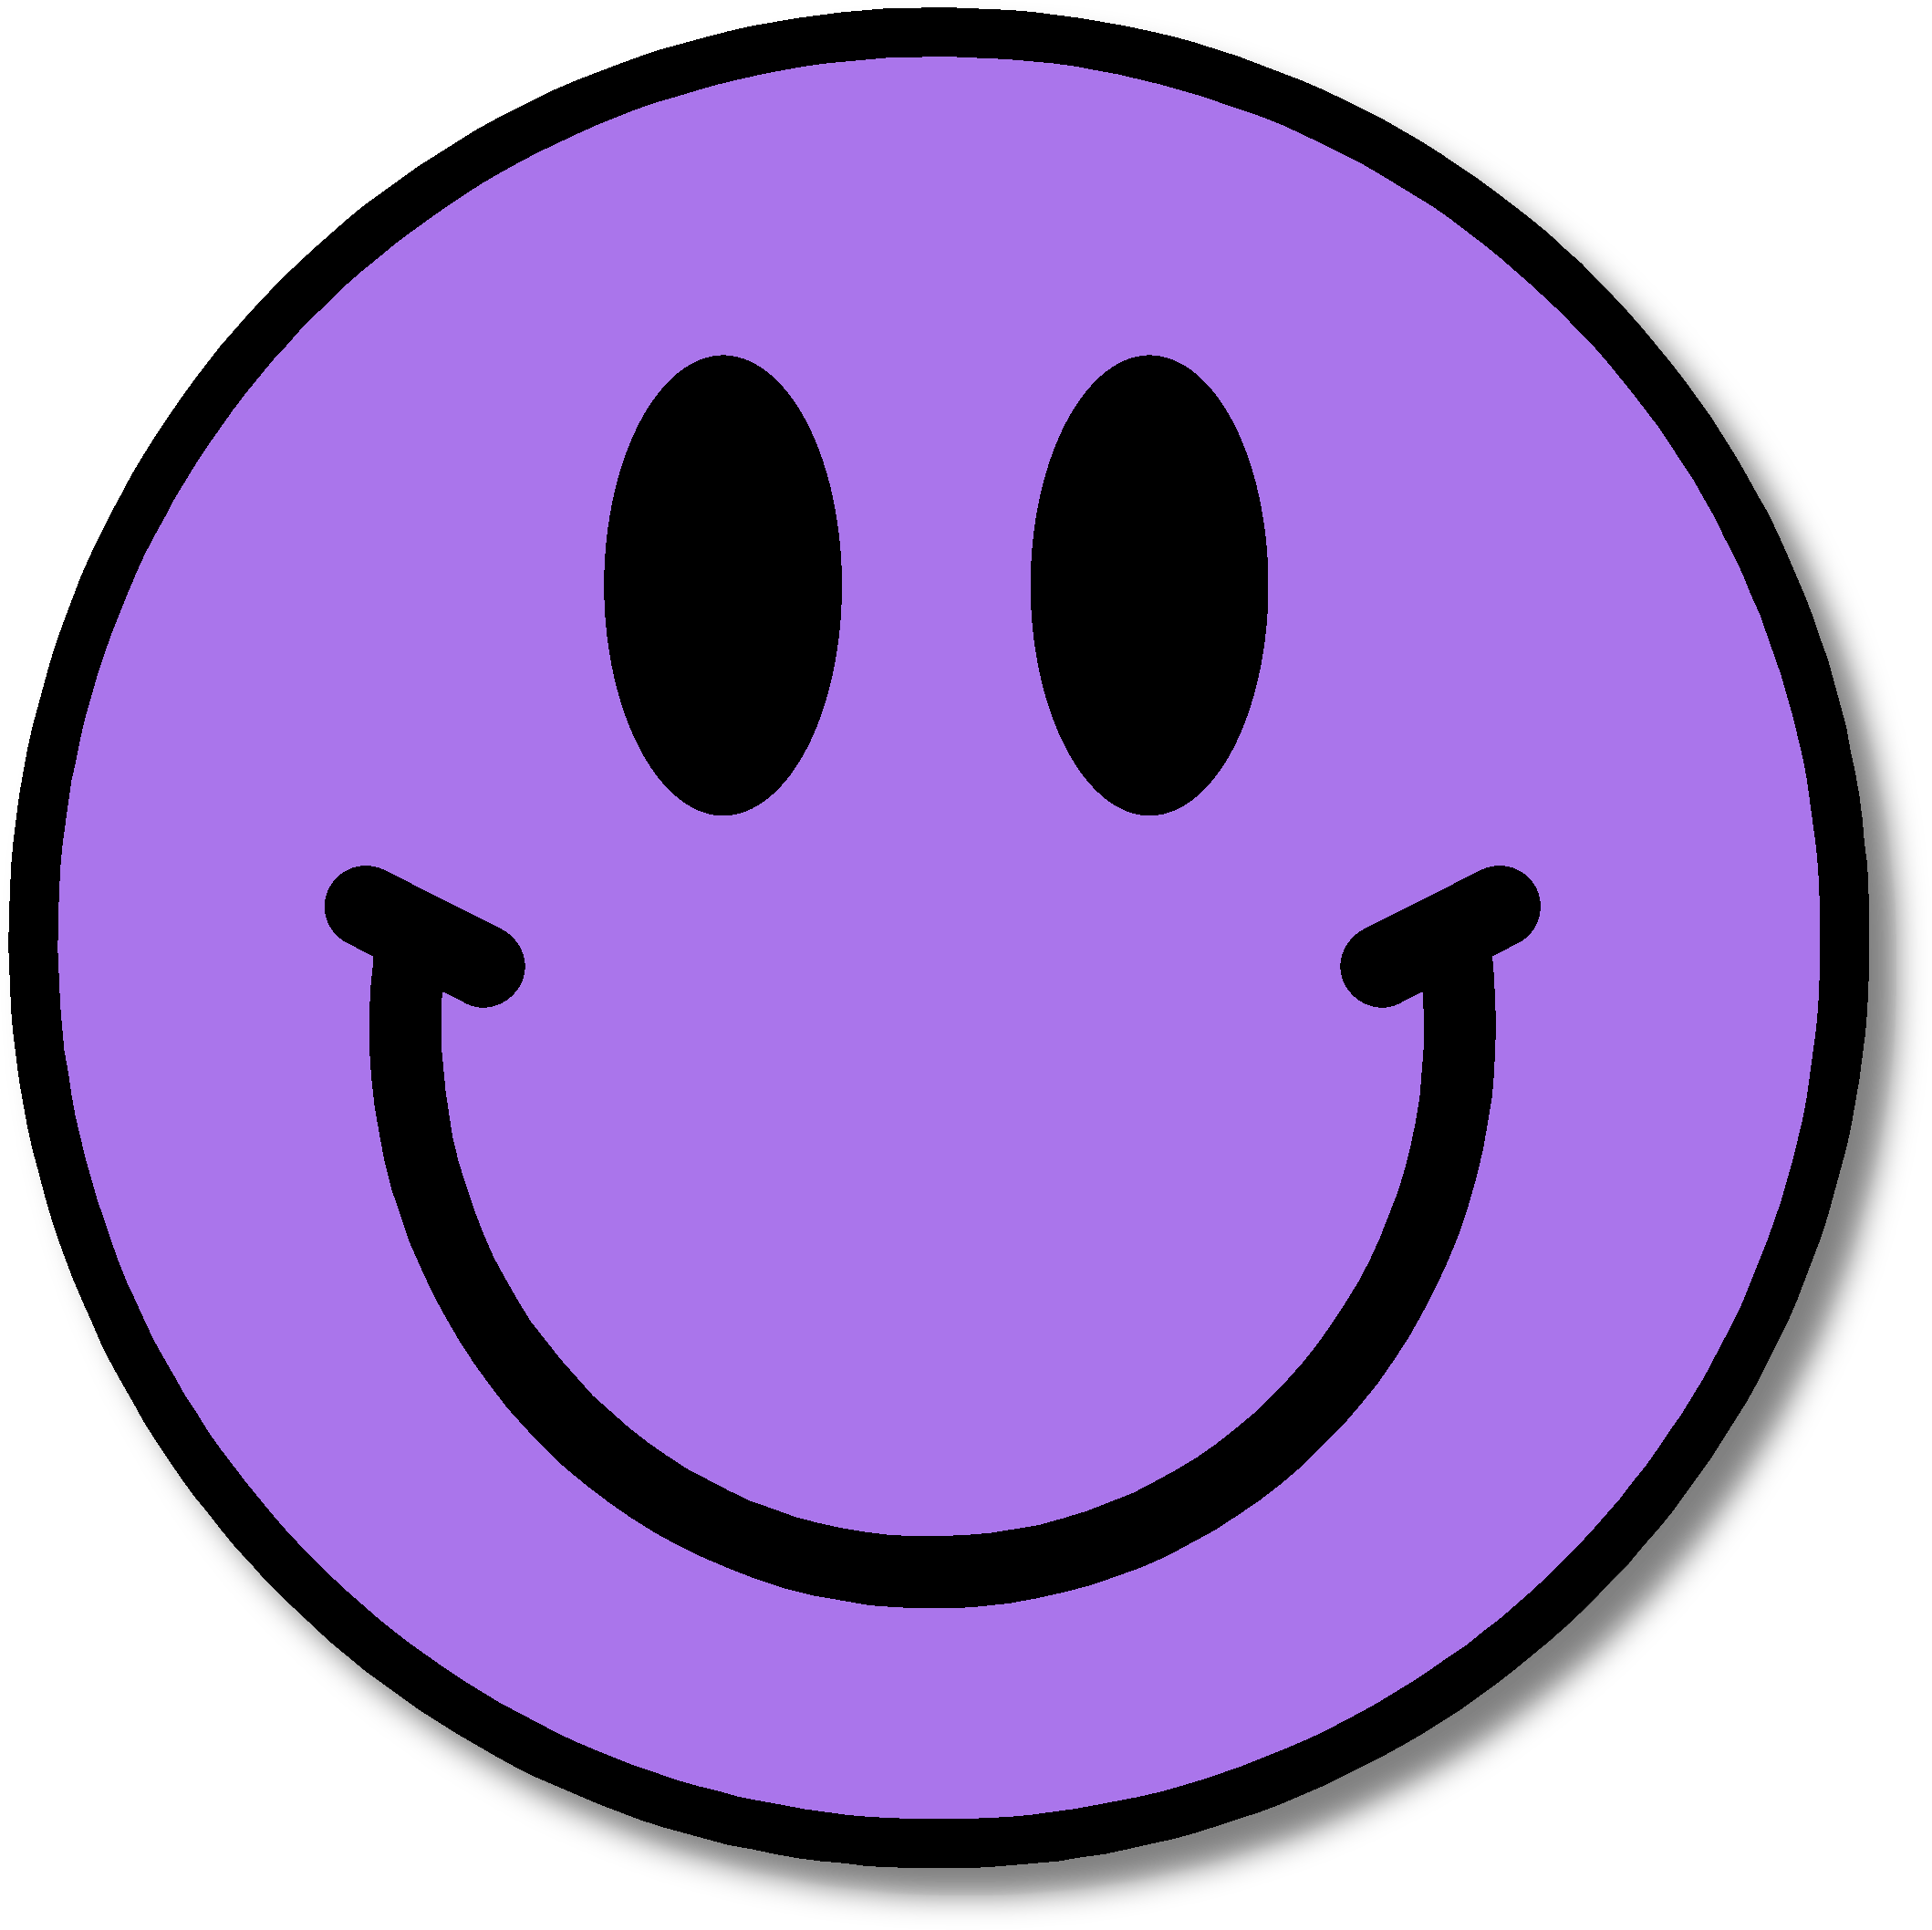 Small Smiley Faces Clip Art - ClipArt Best - Free Small Smiley Face Clip Art